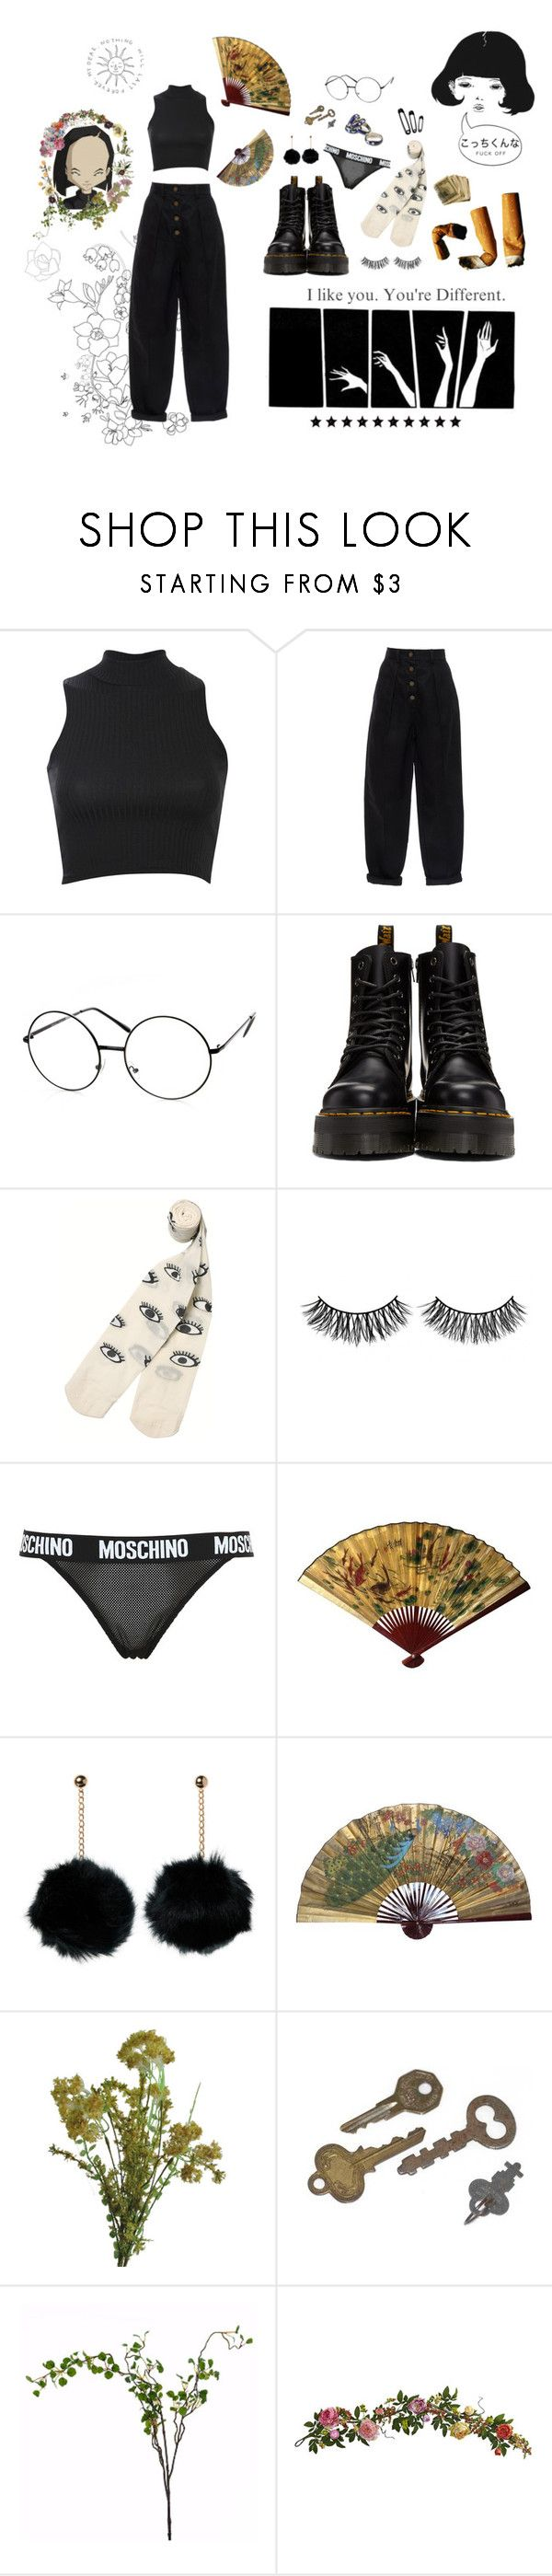 """""""black like your eye is gonna be if you don't back off"""" by fawnlxt ❤ liked on Polyvore featuring Pilot, ZeroUV, Dr. Martens, Monki, Yumi, Rimini, Moschino, Anello, Abigail Ahern and Wyld Home"""